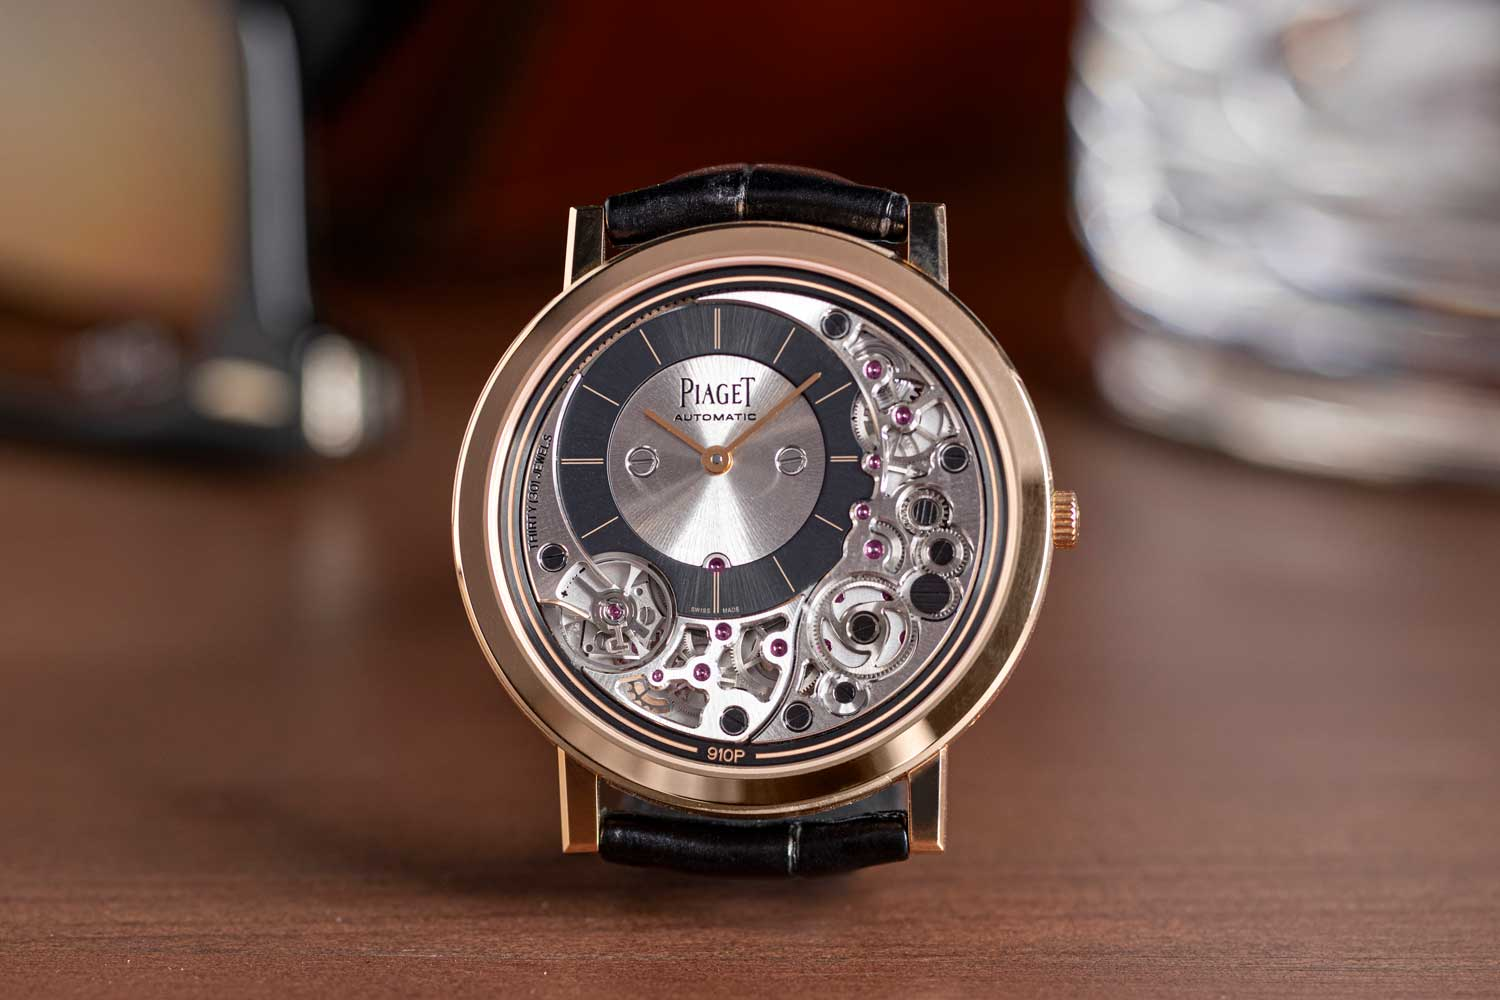 The 41mm diameter Piaget Altiplano Ultimate Automatic 910P in rose gold measures in at a thickness of 4.30mm (©Revolution)